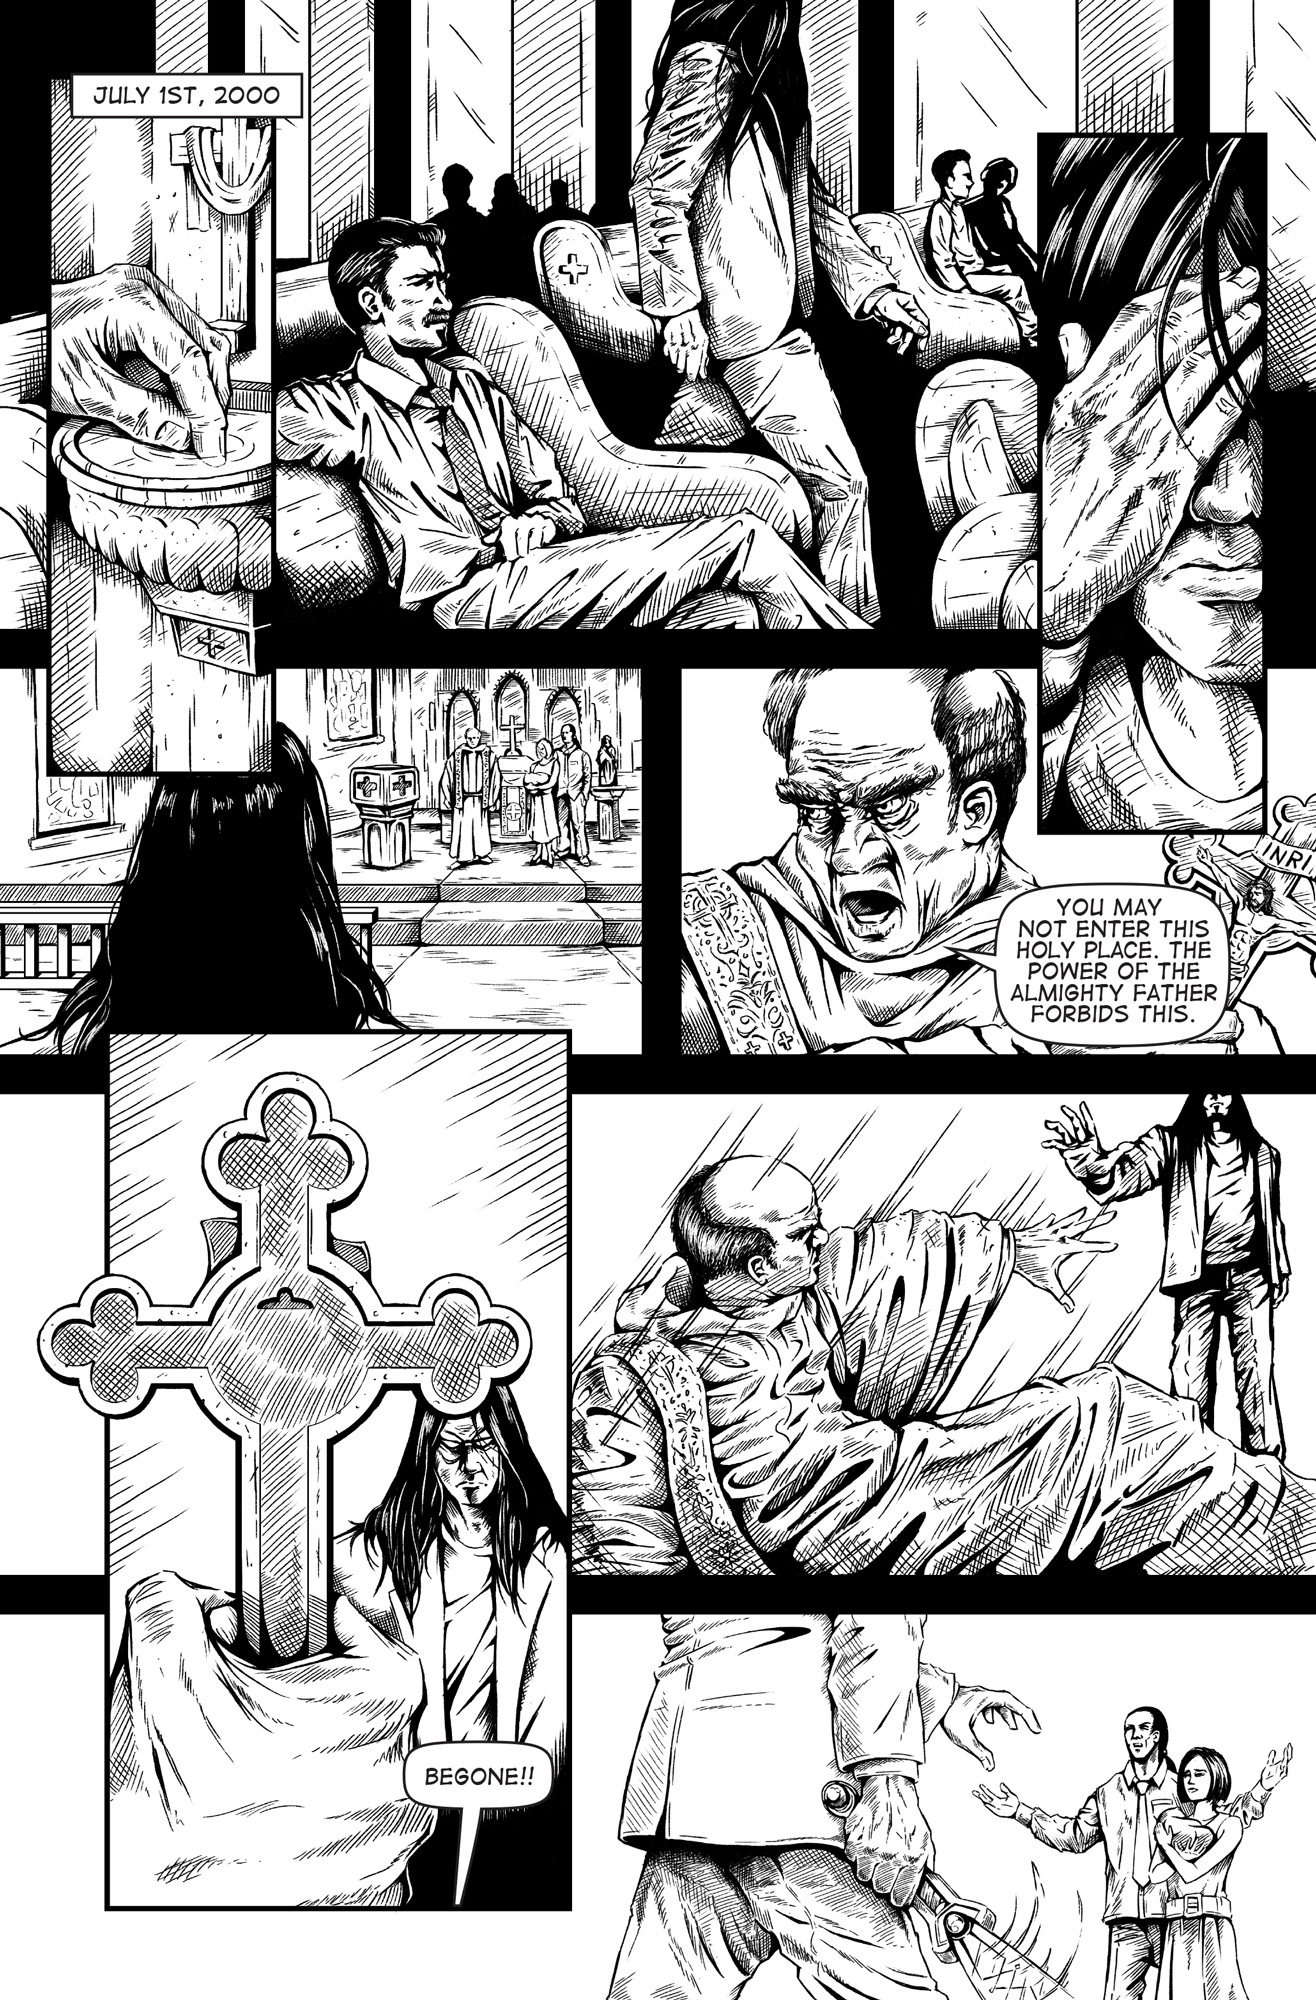 Soulbinder Issue 2, Page 5